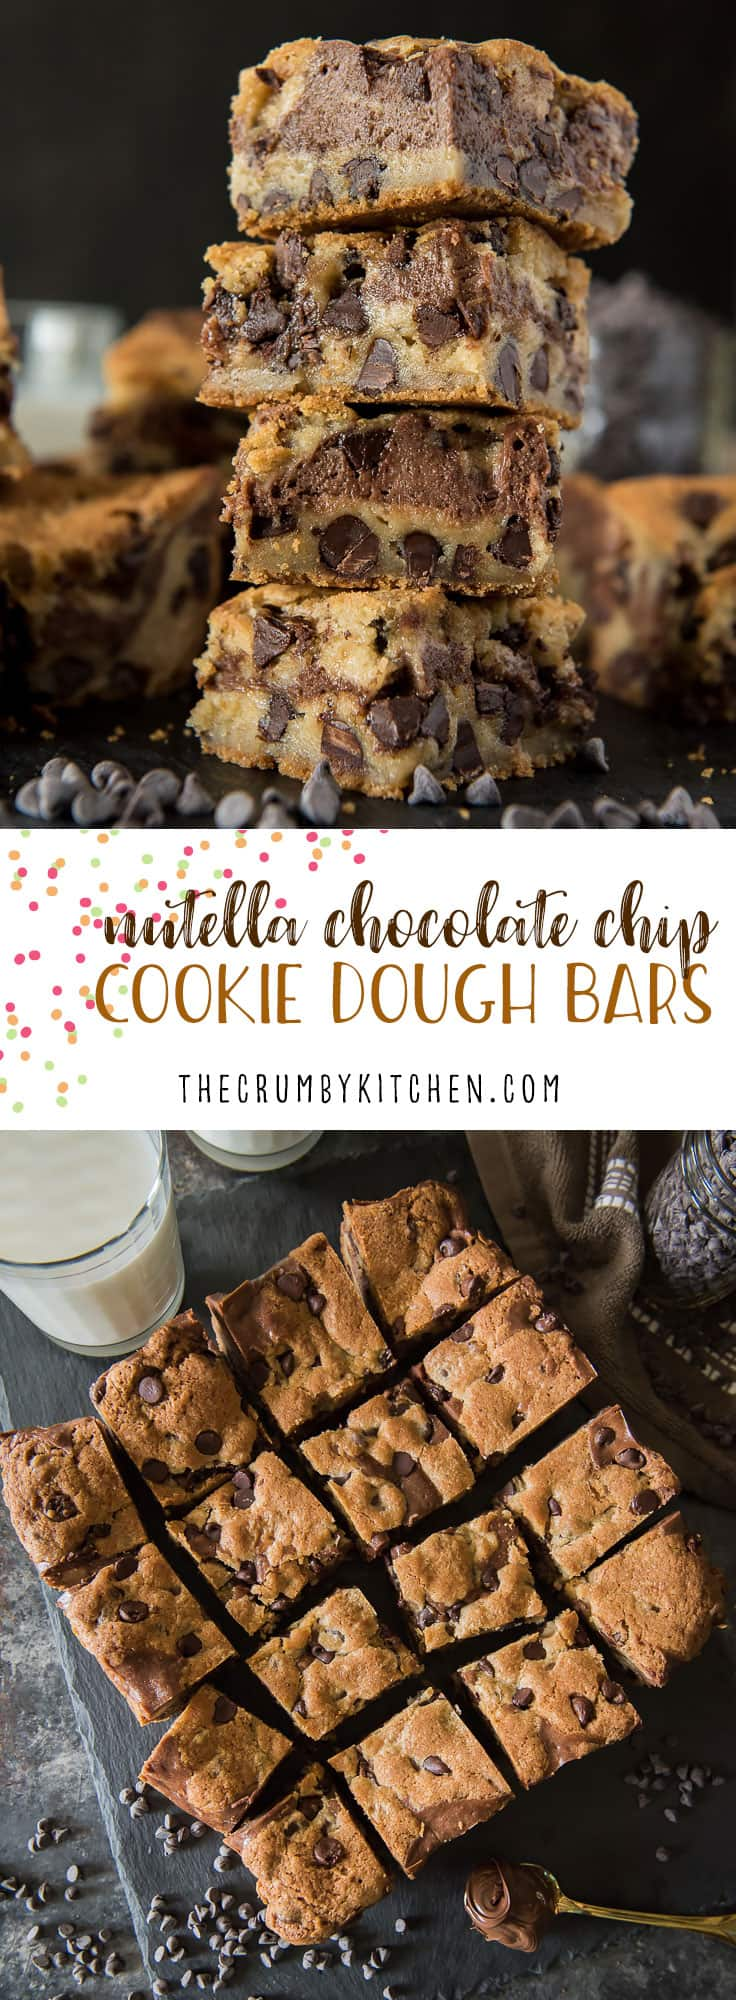 Not a cookie, not a brownie: these Nutella Chocolate Chip Cookie Dough Bars are the softest, chewiest, gooey-est best of both worlds!